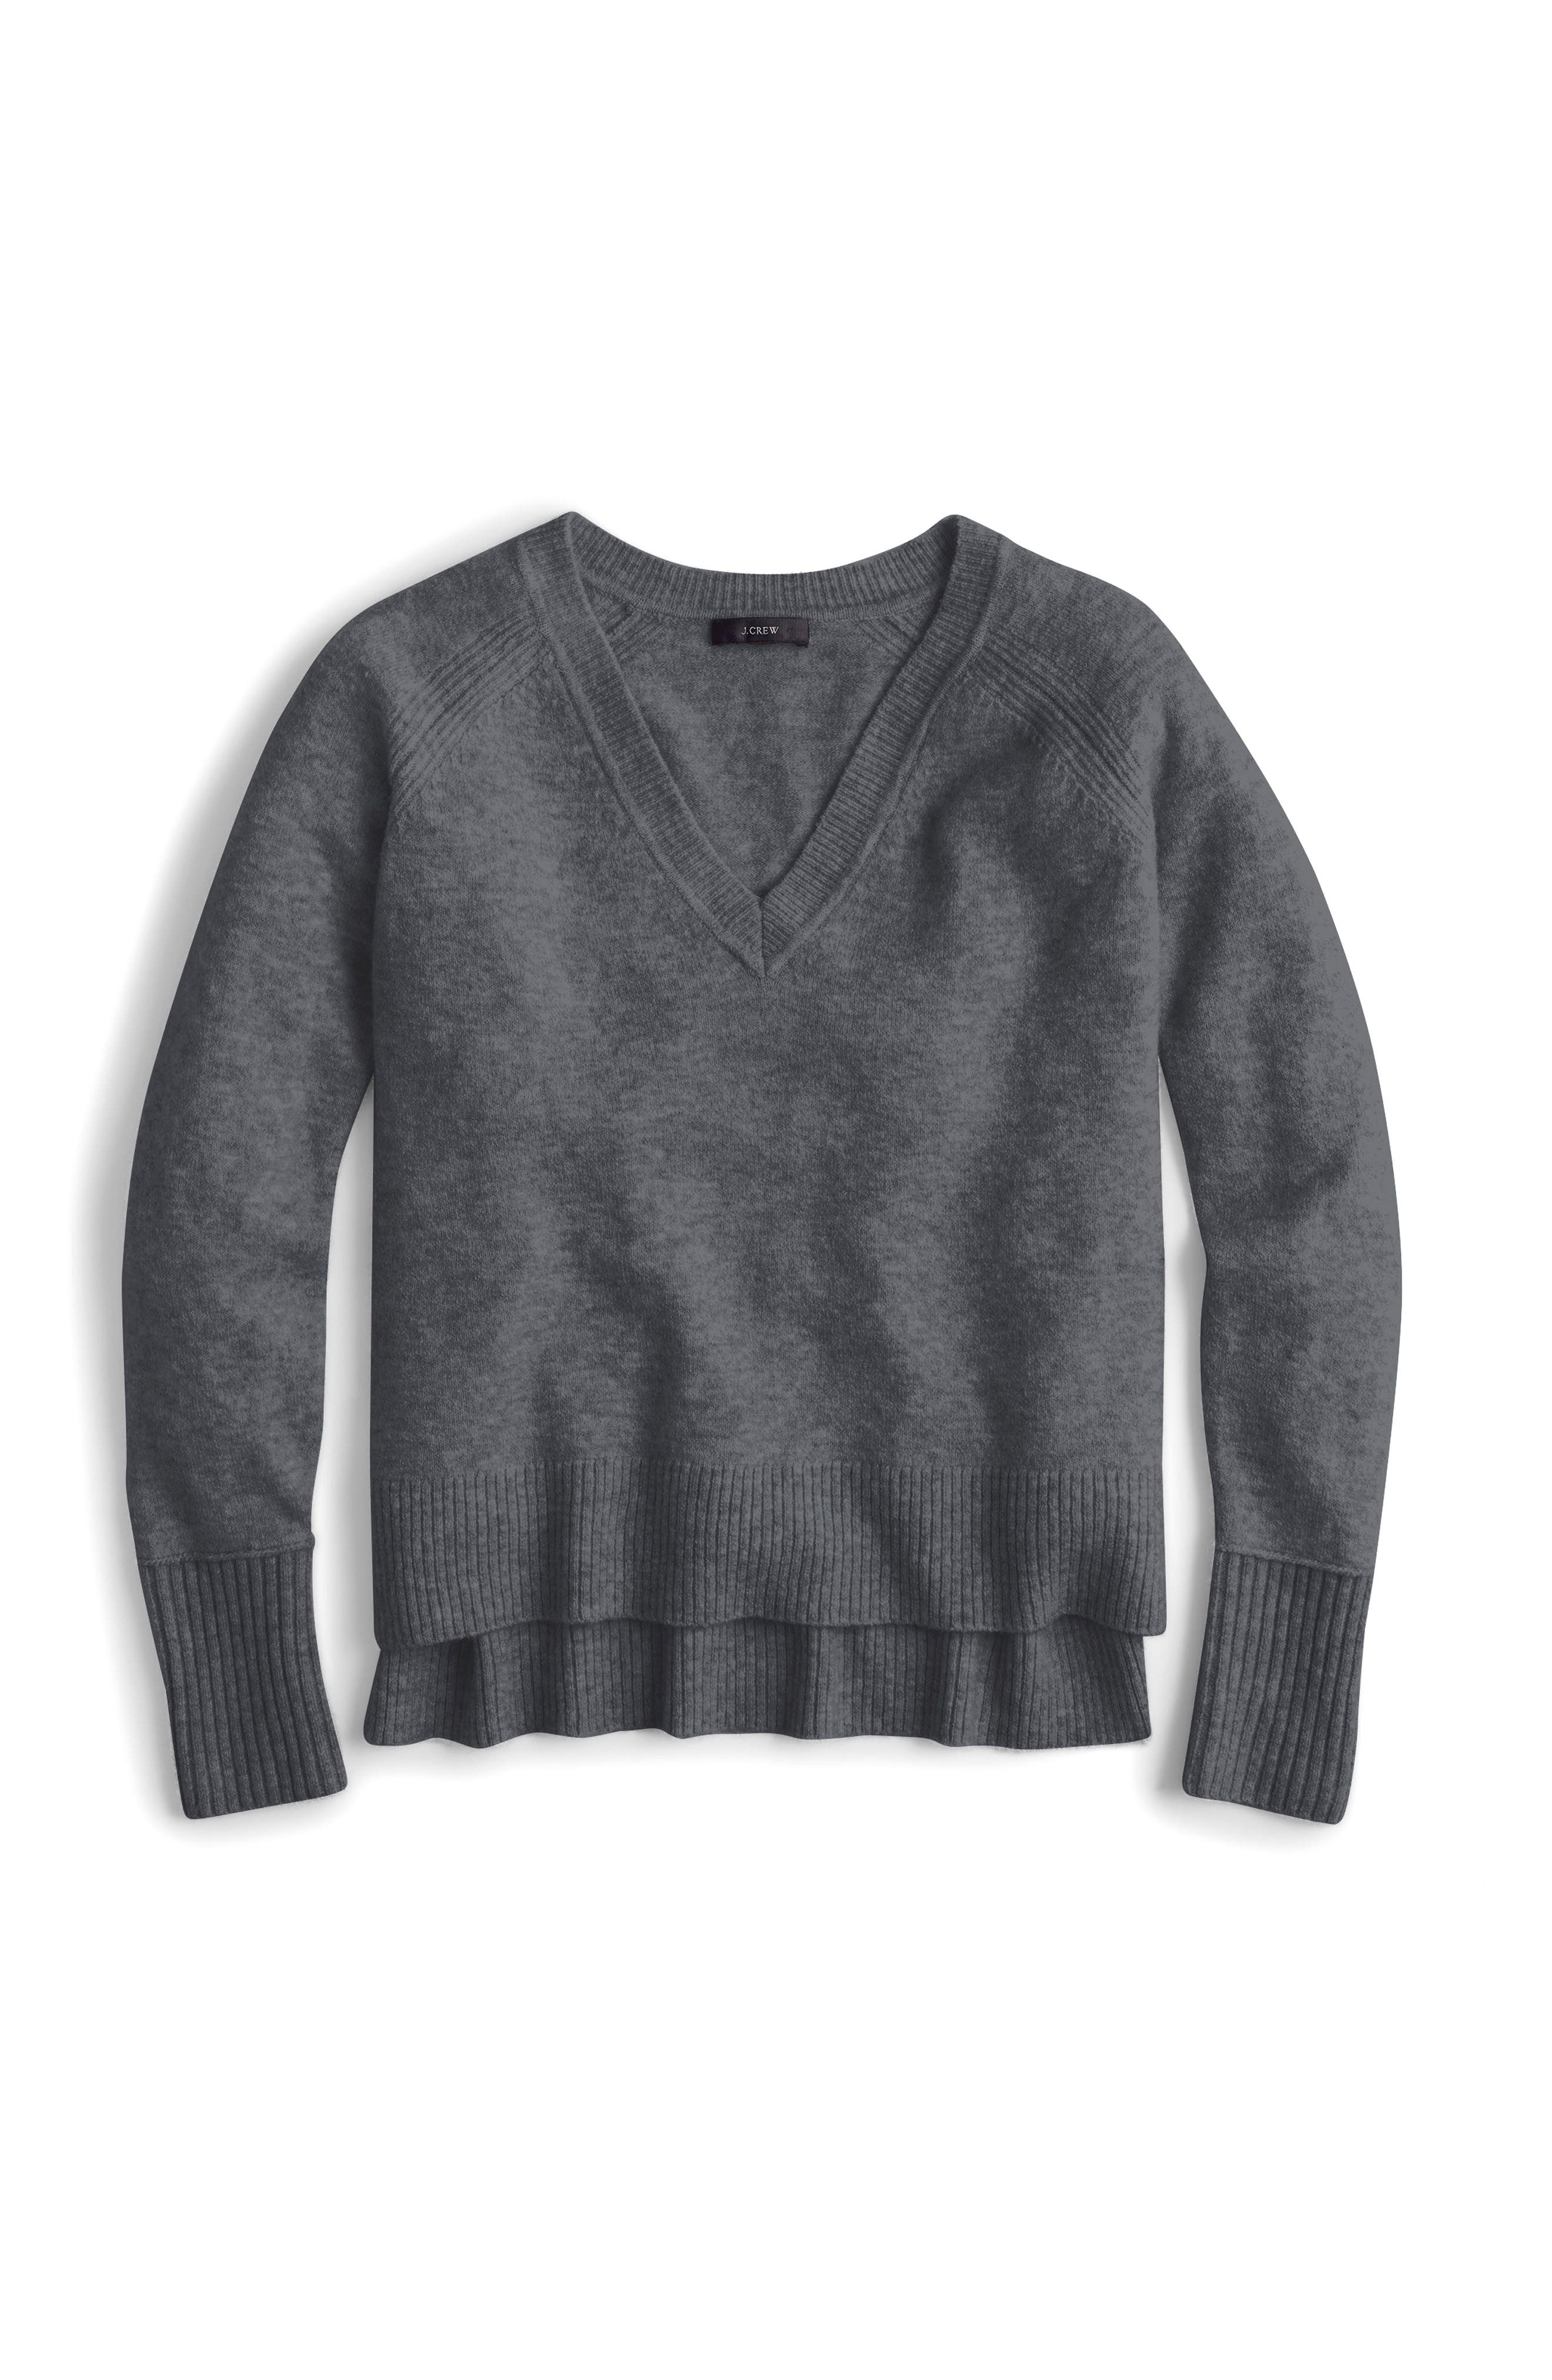 J.Crew Supersoft Yarn V-Neck Sweater,                             Alternate thumbnail 4, color,                             Heather Carbon